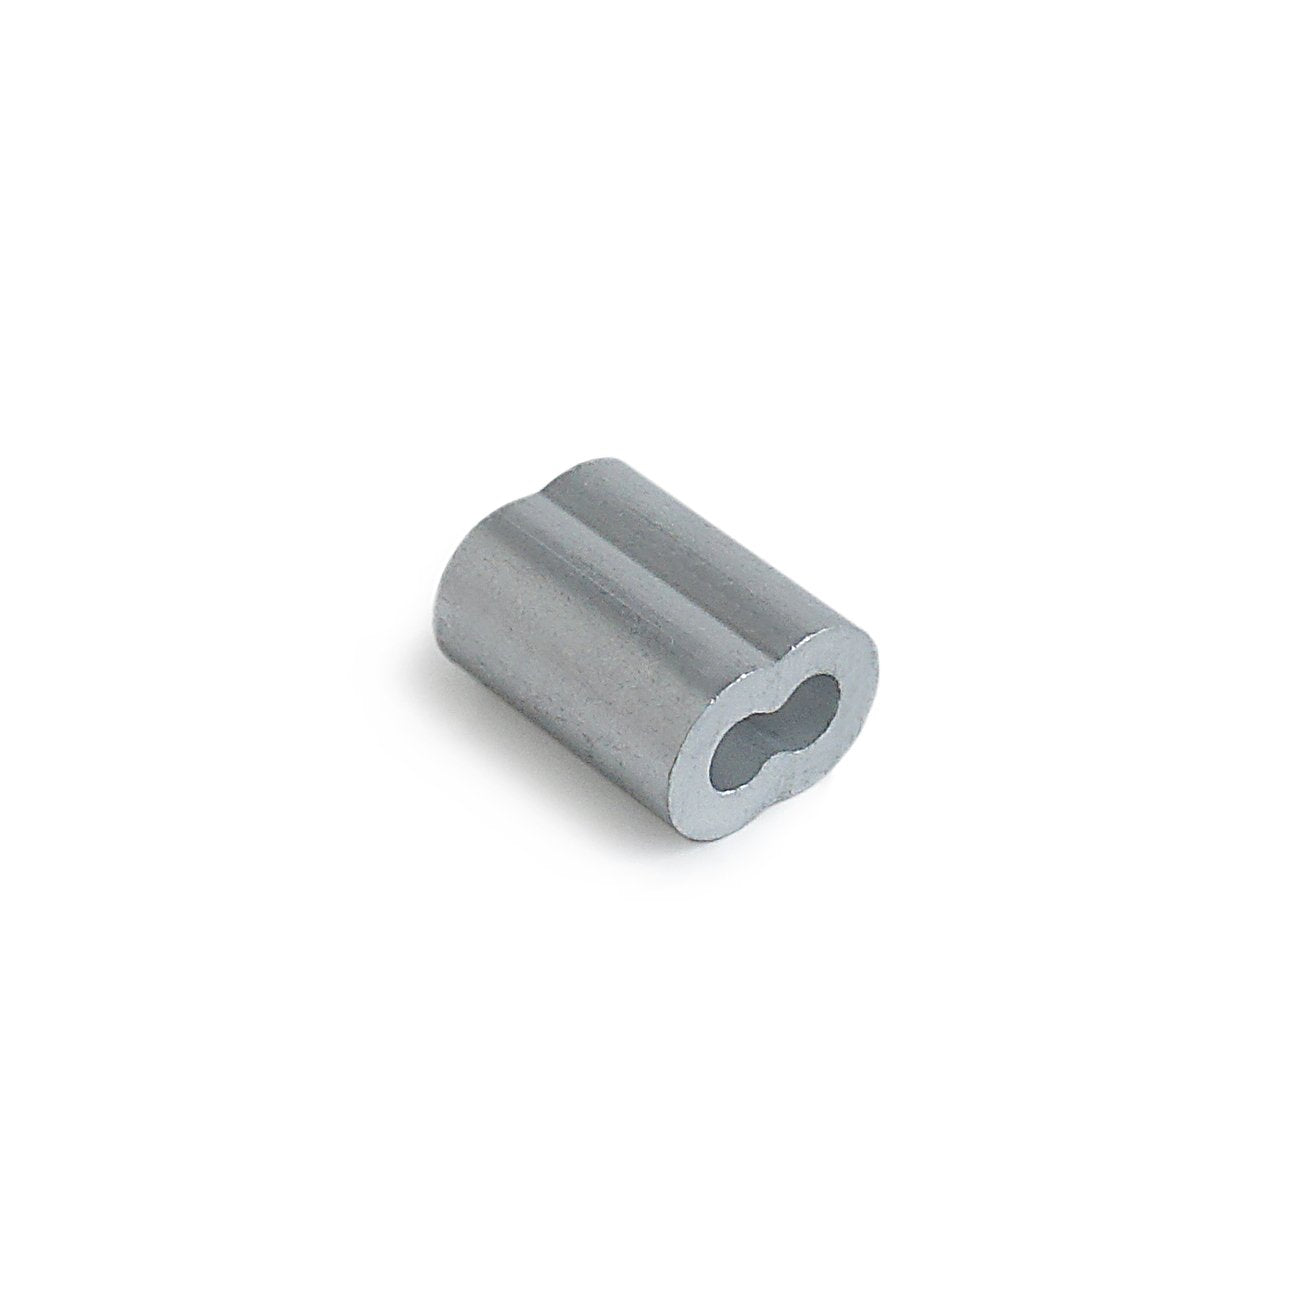 AS-3.0 (3mm Alloy swage for wire rope)